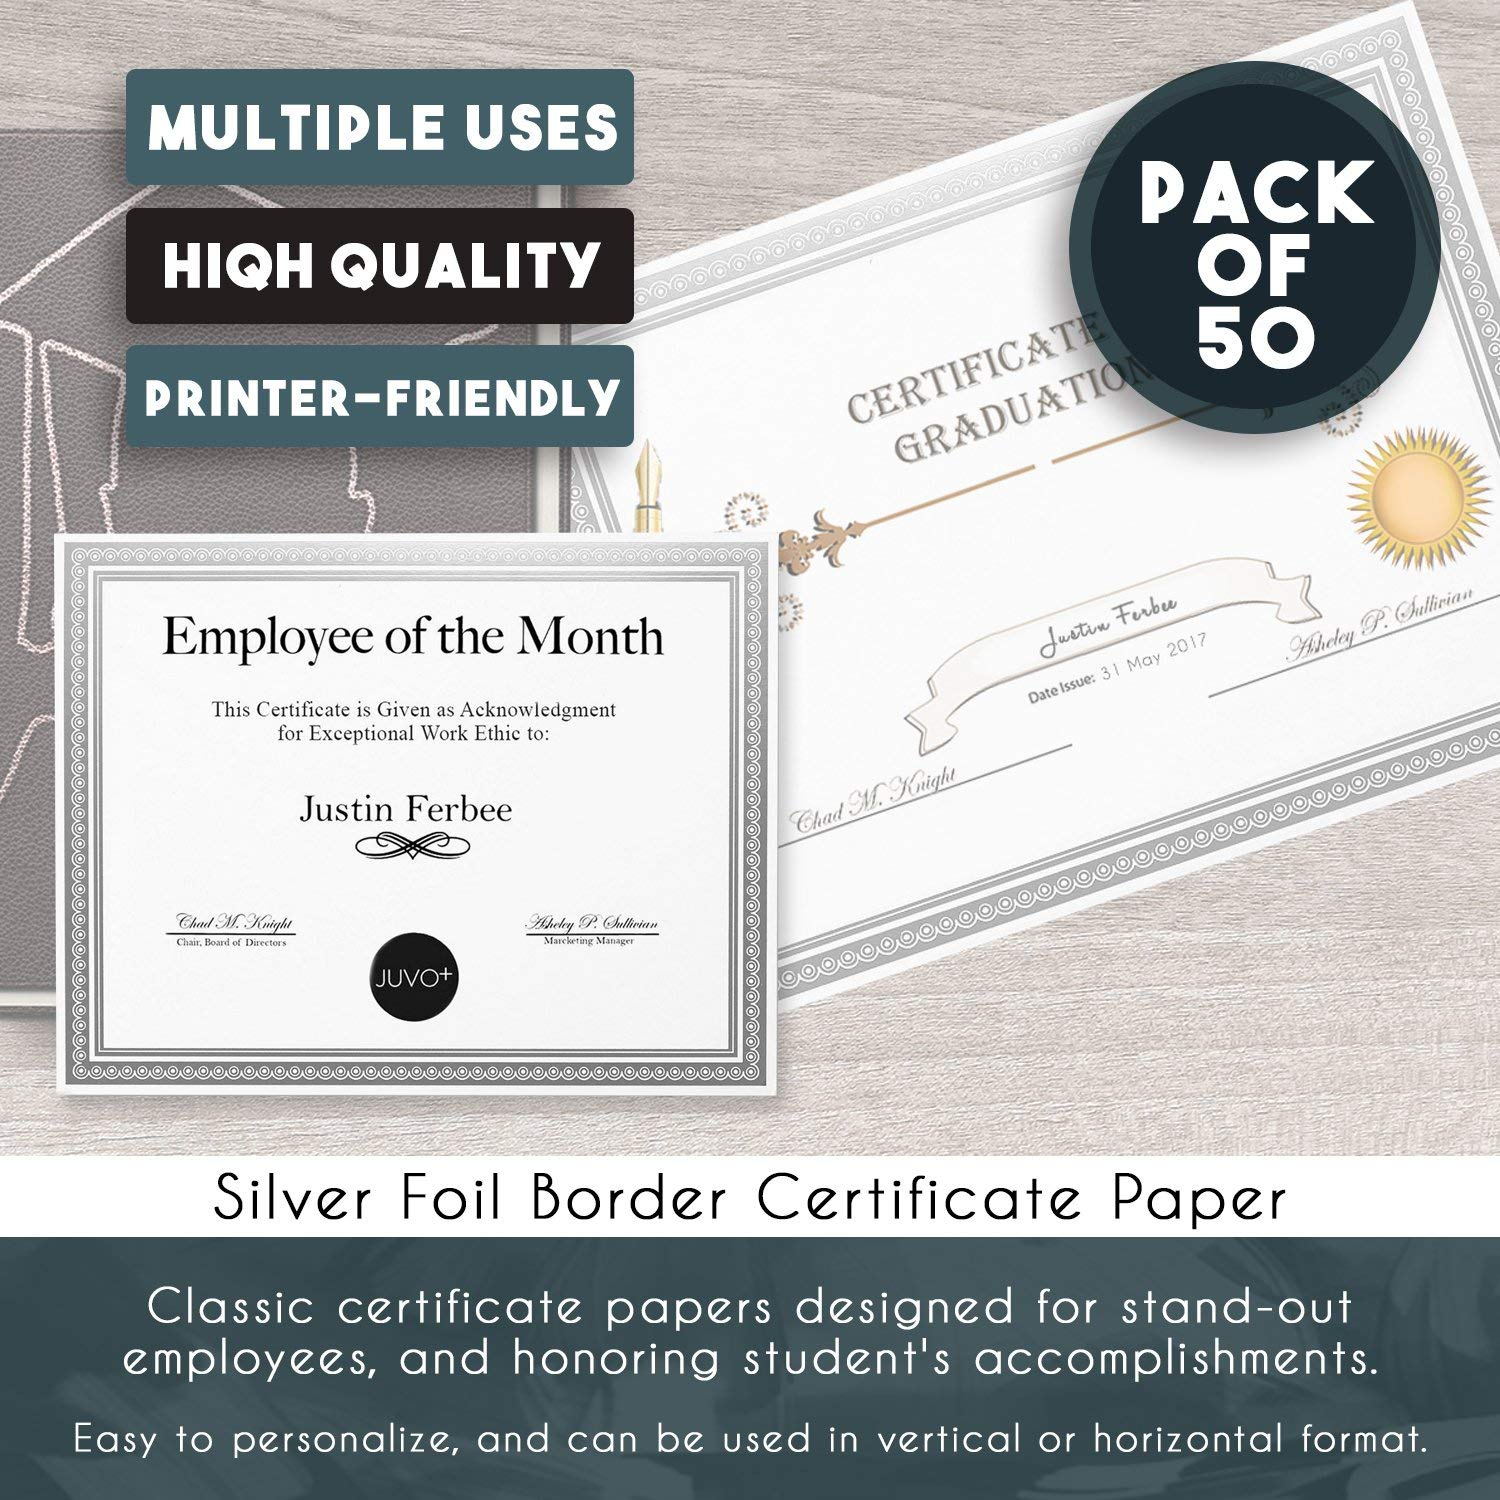 award certificate paper with silver foil metallic border 50 count